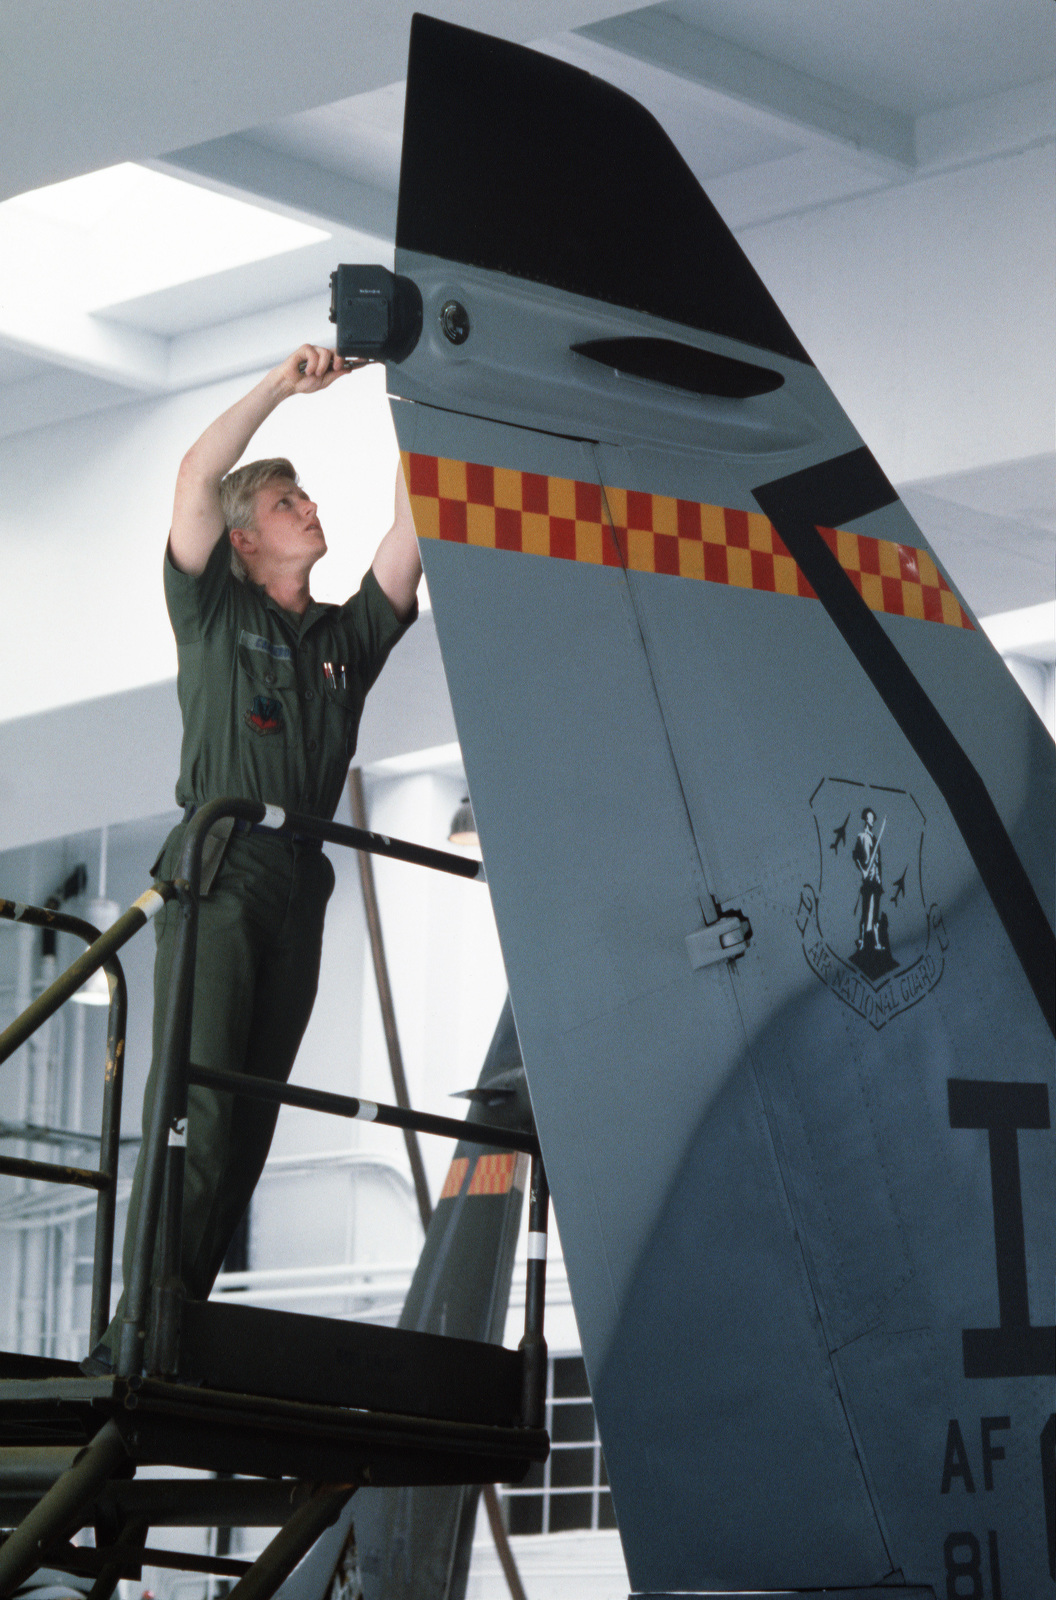 STAFF Sergeant (SSGT) David P. Cameron of the 124th Tactical Fighter Squadron, Iowa Air National Guard, changes the tail light bulb on an A-7D Corsair II aircraft during preparations for deployment to Yokota Air Base, Japan, to participate in Exercise COP